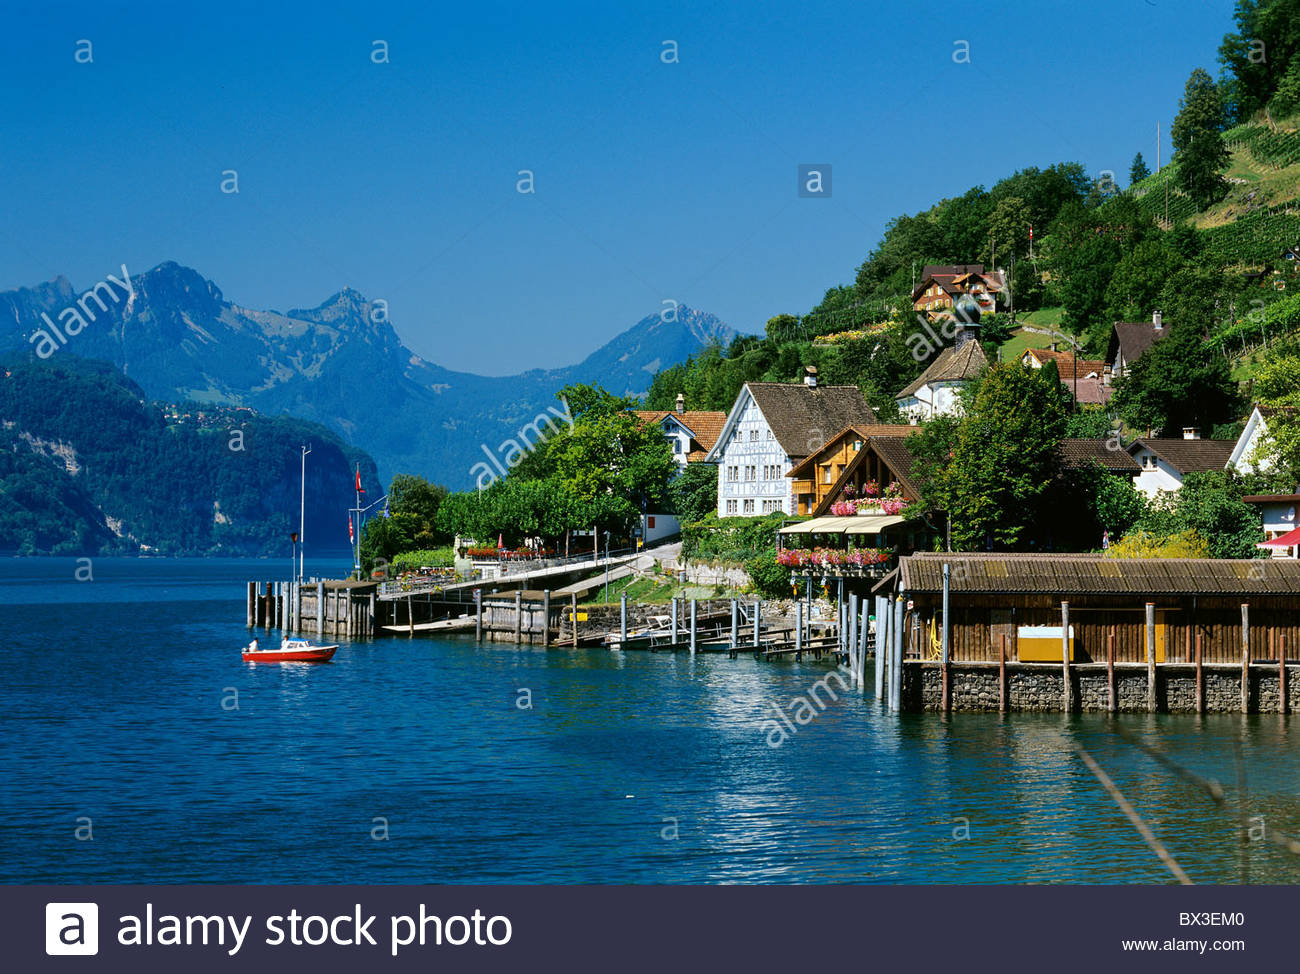 switzerland europe canton st gallen quinten village car free harbor stock photo 33268816 alamy. Black Bedroom Furniture Sets. Home Design Ideas